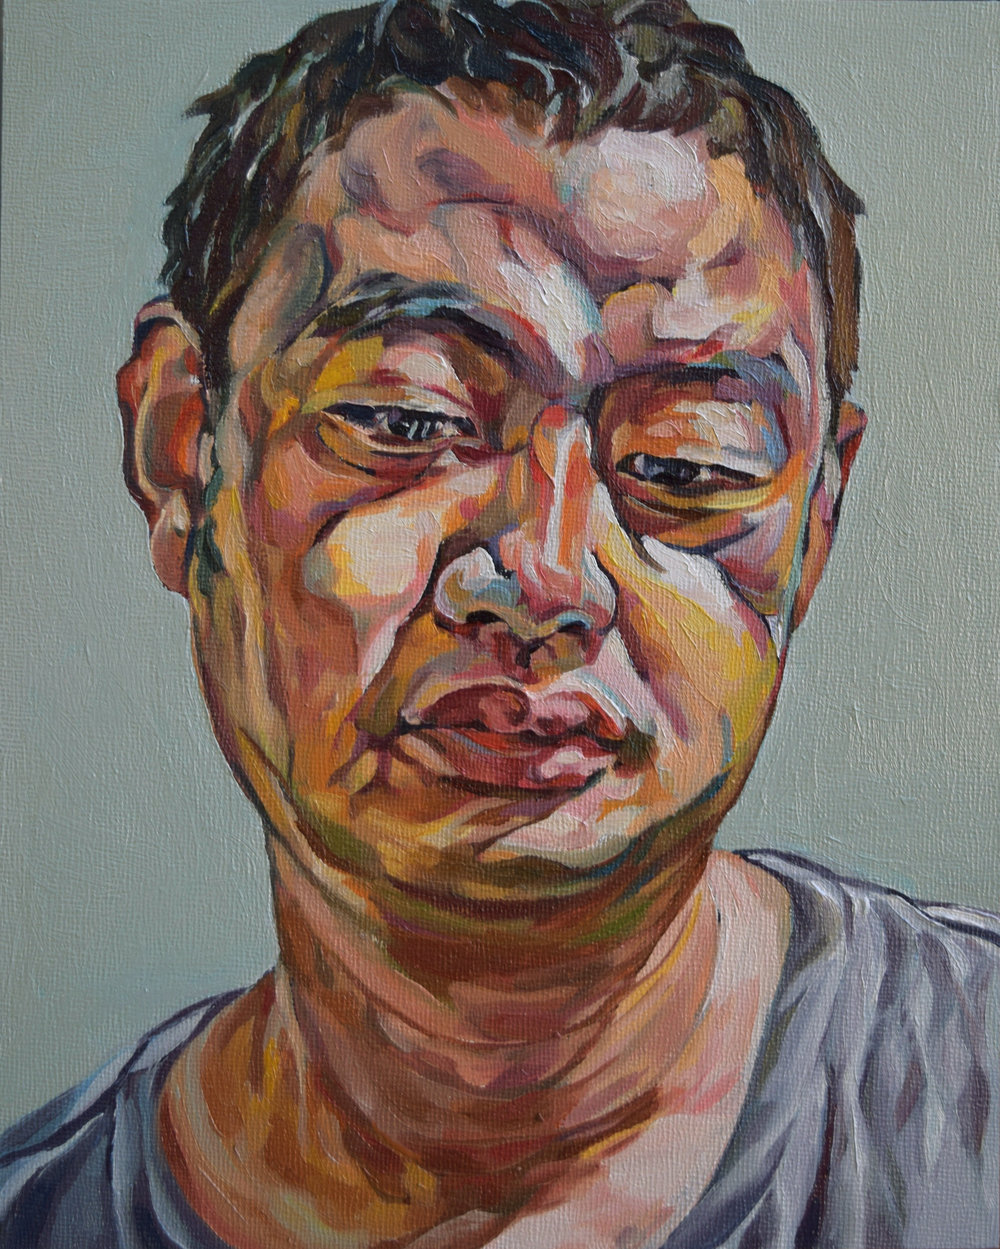 Qing_Song_Gray_OilonWoodPanel_10x8.jpg